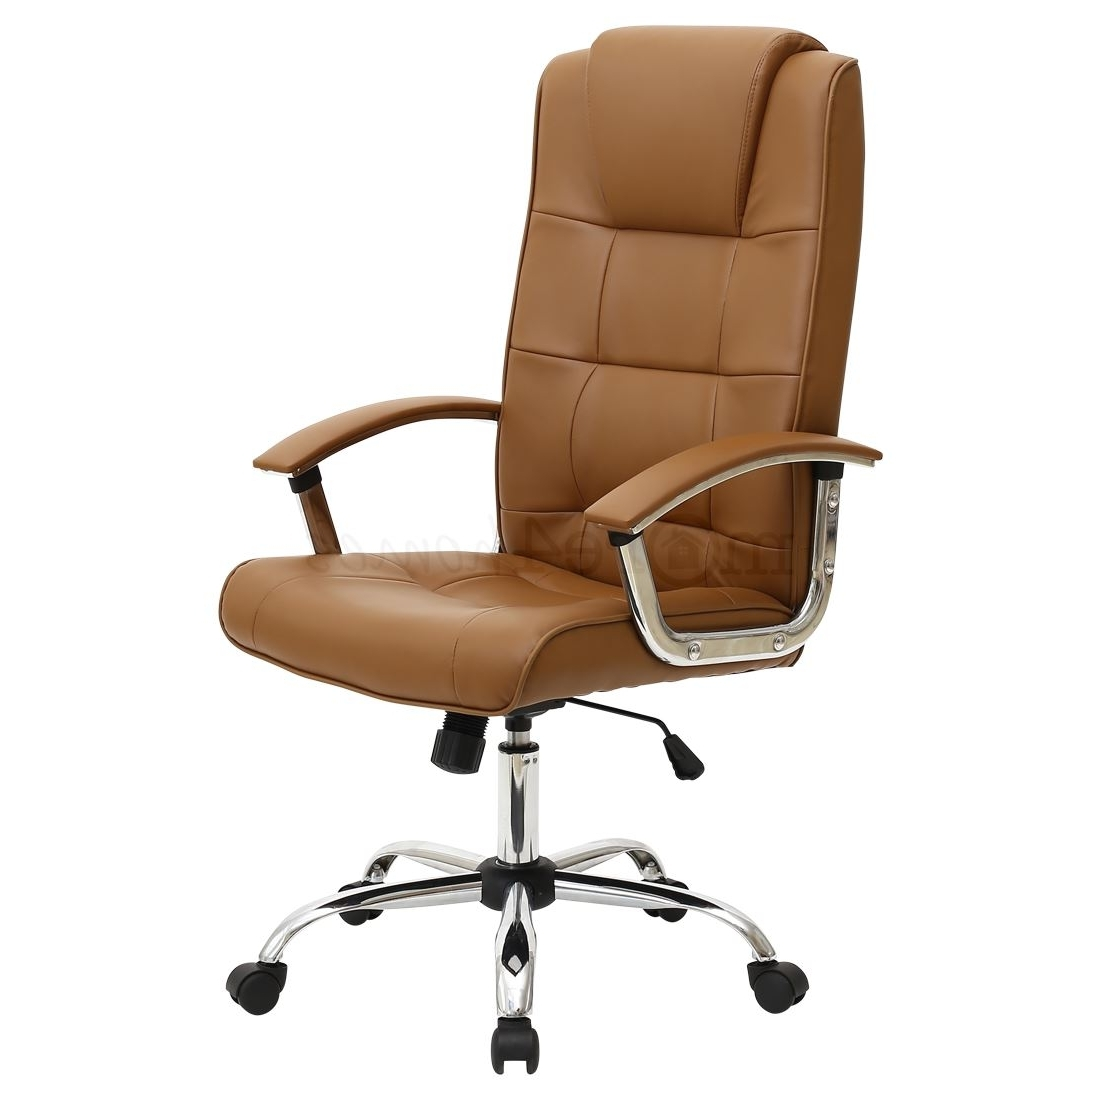 Lane Executive Office Chairs Pertaining To Famous Chair : Faux Leather Executive Office Chair Lane Executive Leather (View 14 of 20)